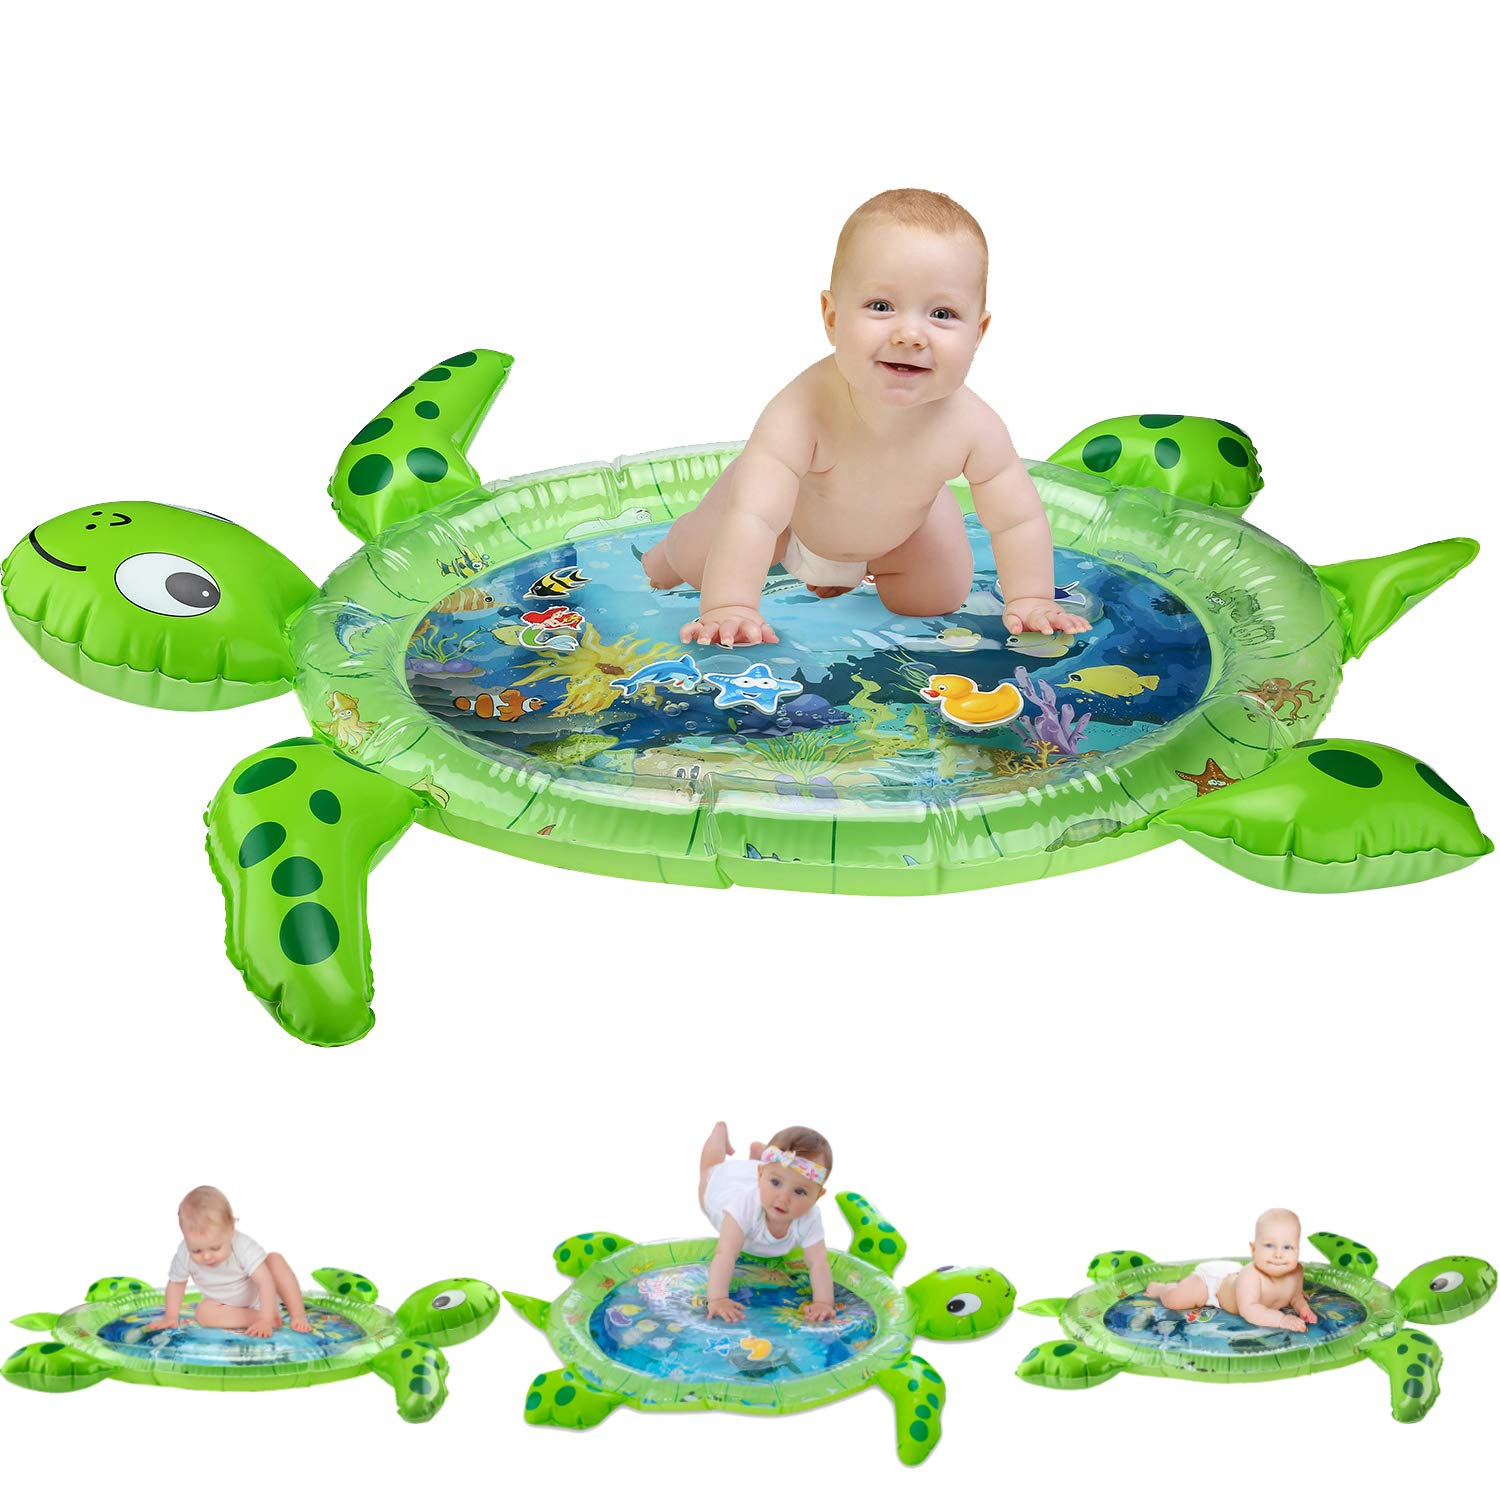 Cartoon Baby PlayMat Turtle Baby Pat Mat Watermat Spray Pad Inflatable Tummy Time Water Mat Sea Infants Toddlers Play Mat Toy